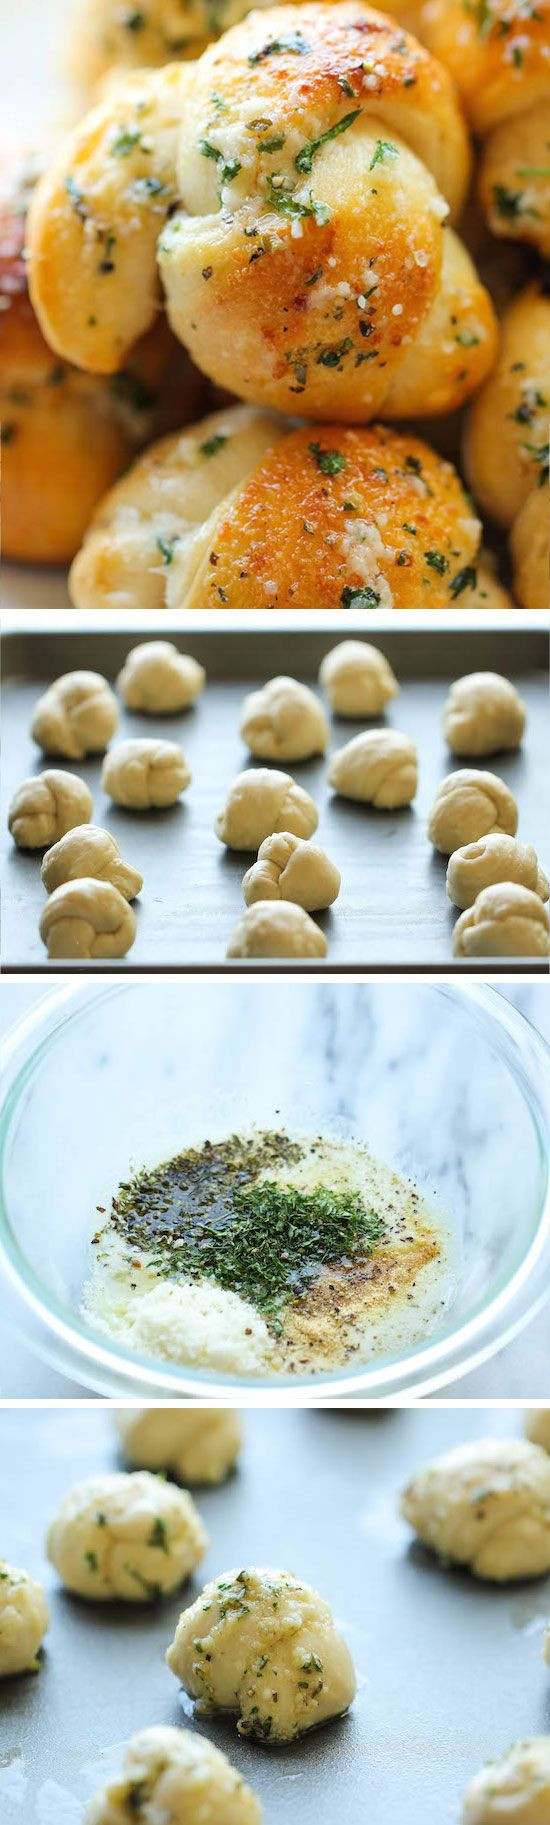 Easter Dinner Menu For A Crowd  Food ideas Easter appetizers and Garlic parmesan knots on